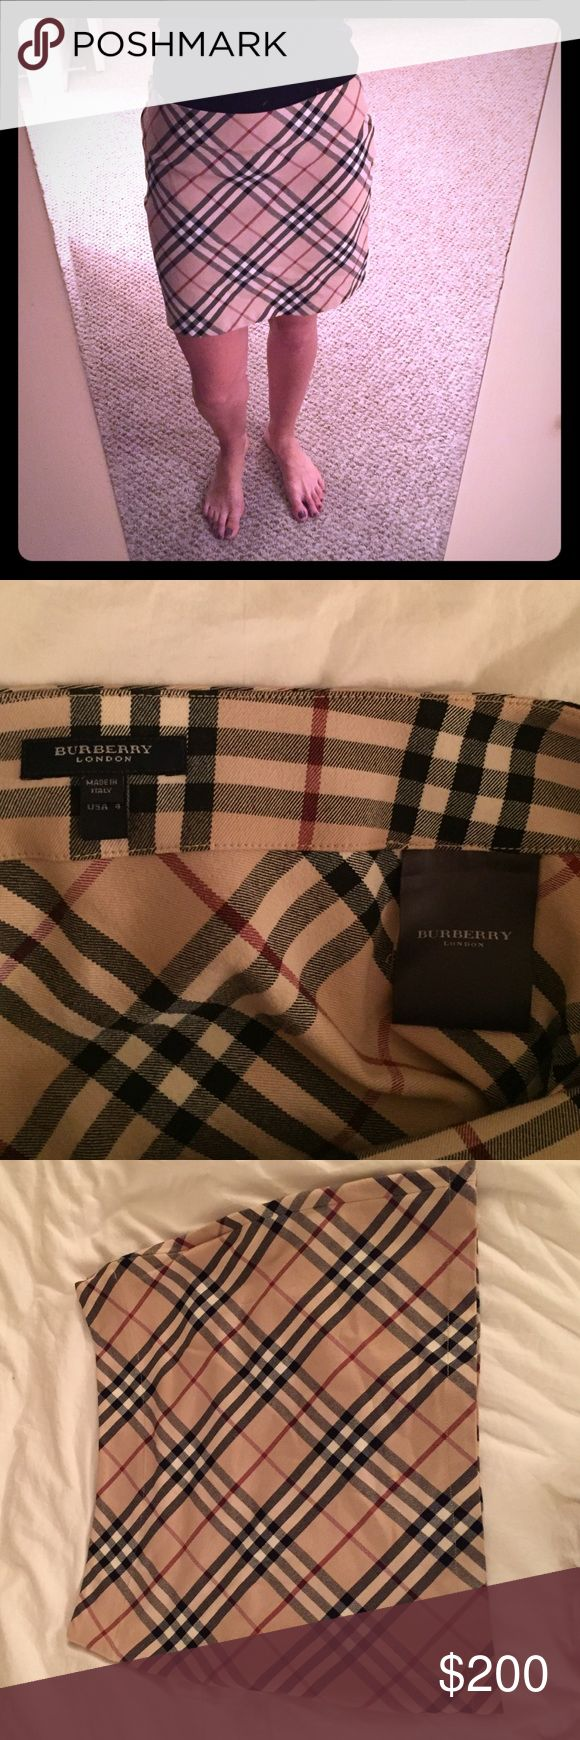 Burberry size 4 classic print skirt! Authentic Burberry classic print skirt. Size 4. Perfect condition! Only worn twice! Burberry Skirts